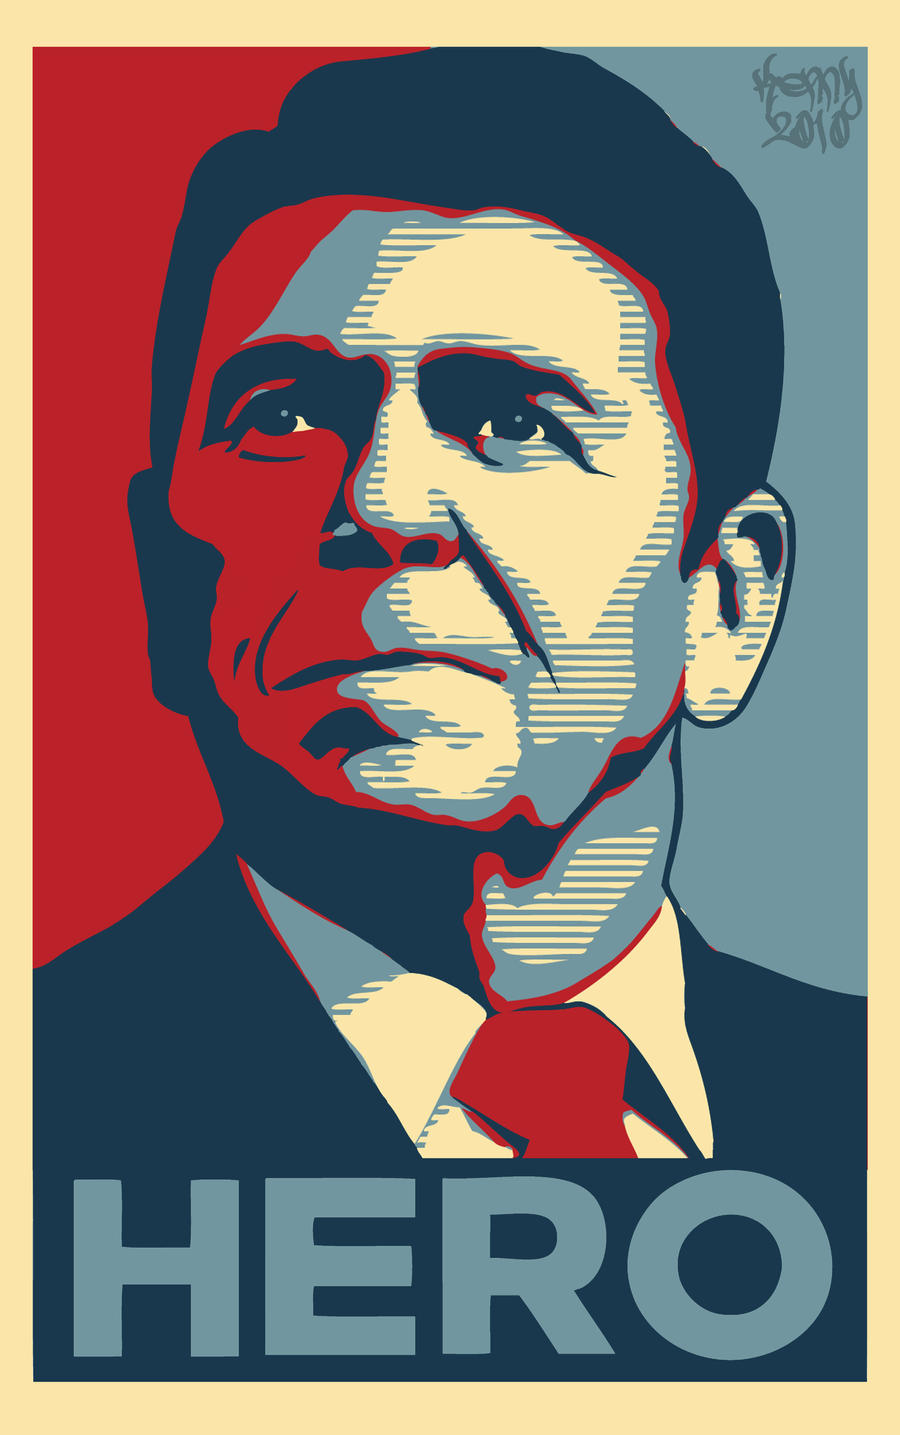 Hero Reagan print by m40a2